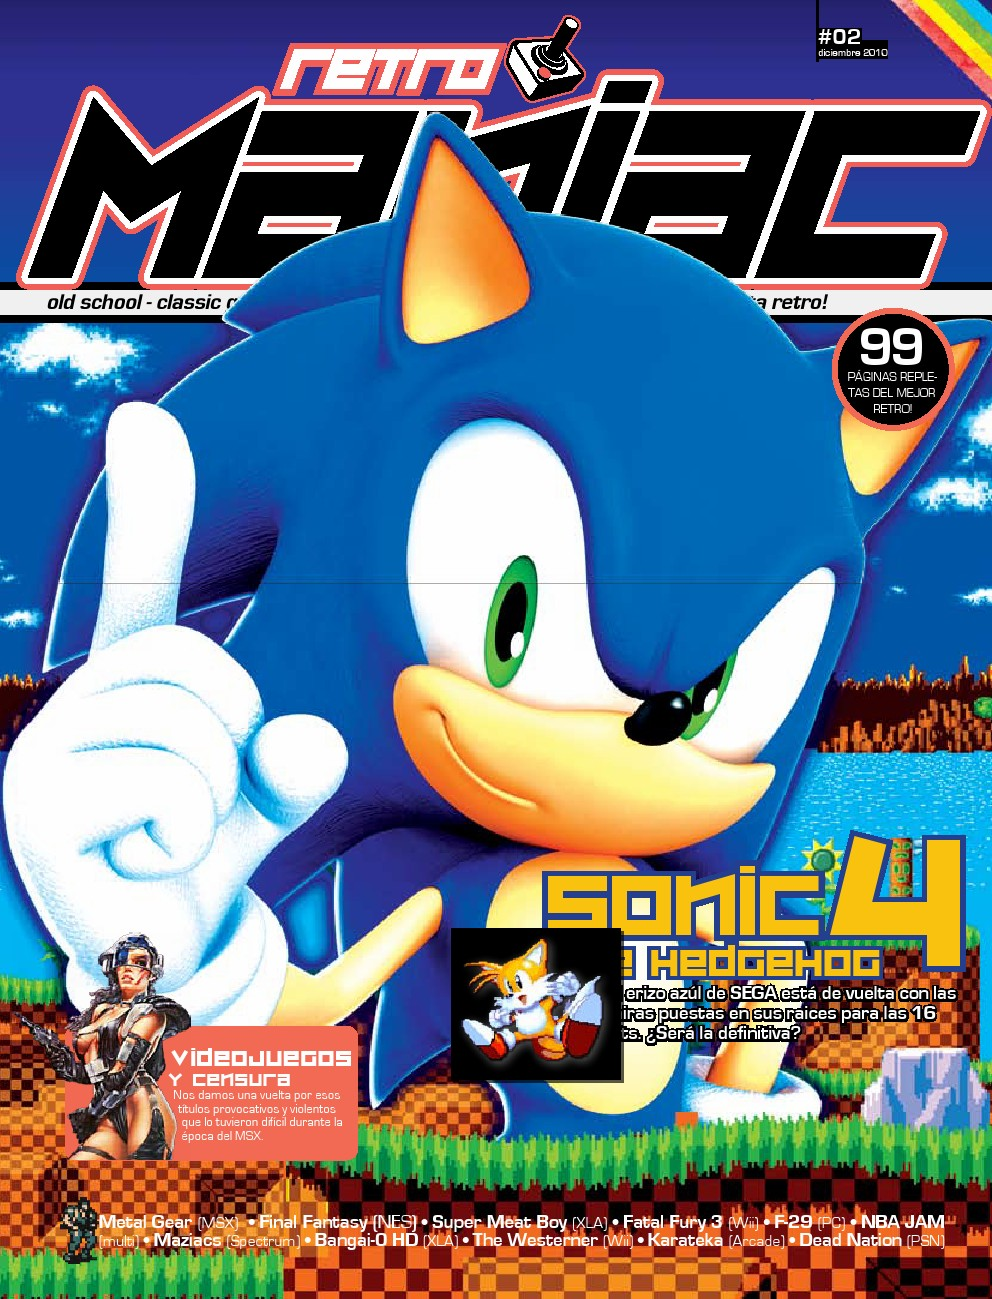 RetroManiac Magazine 02 (02)